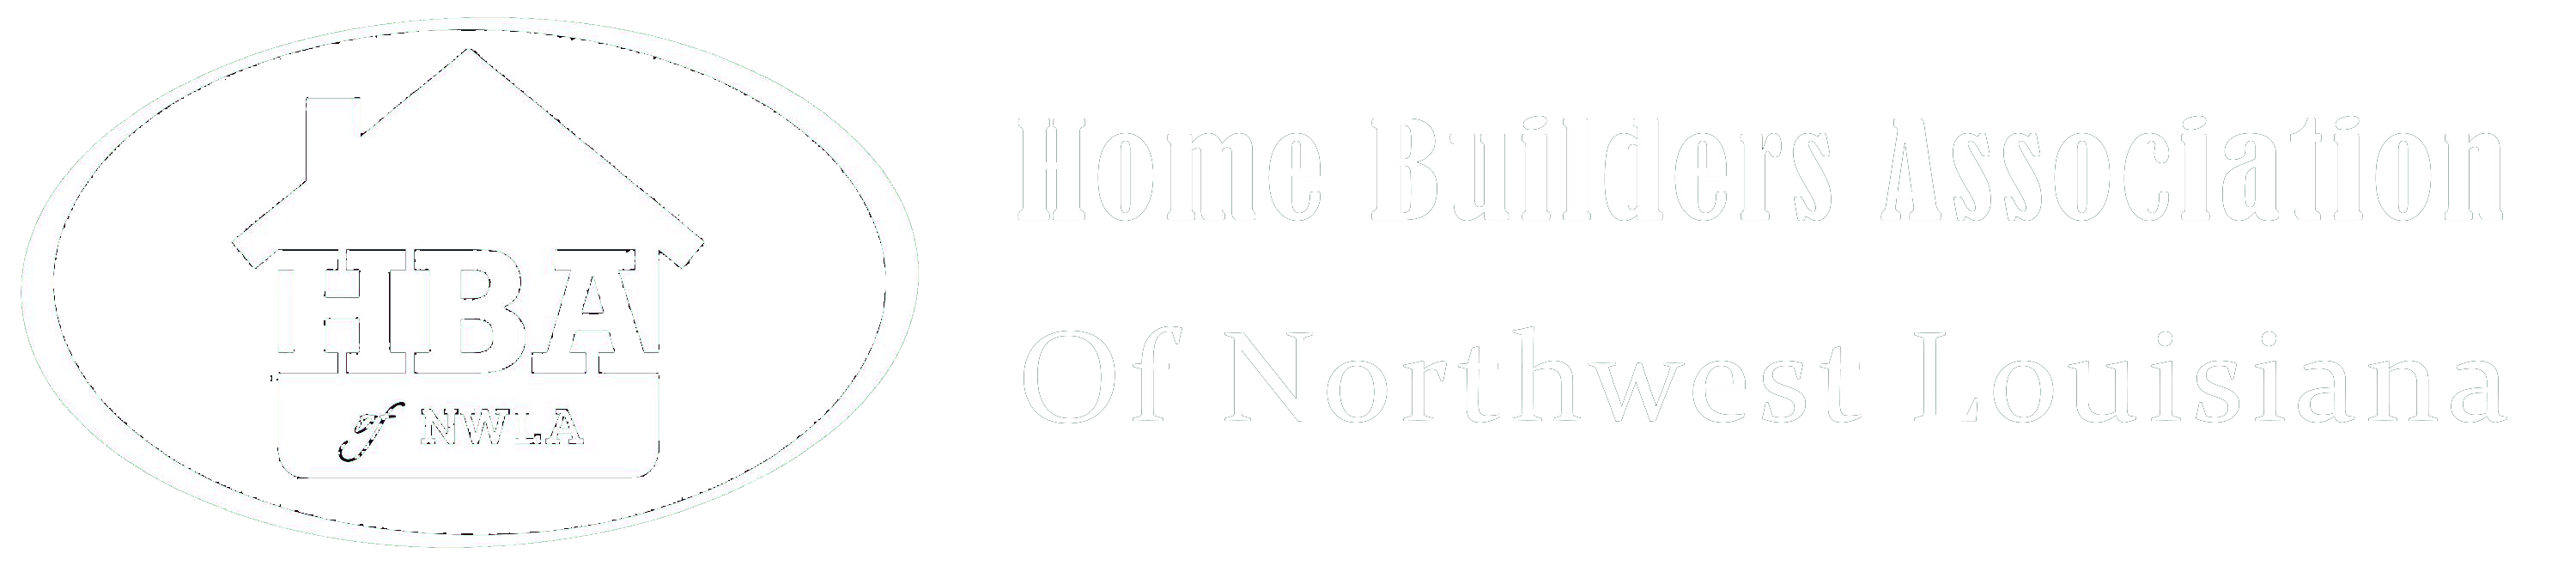 Home Builders Association of Northwest Louisiana